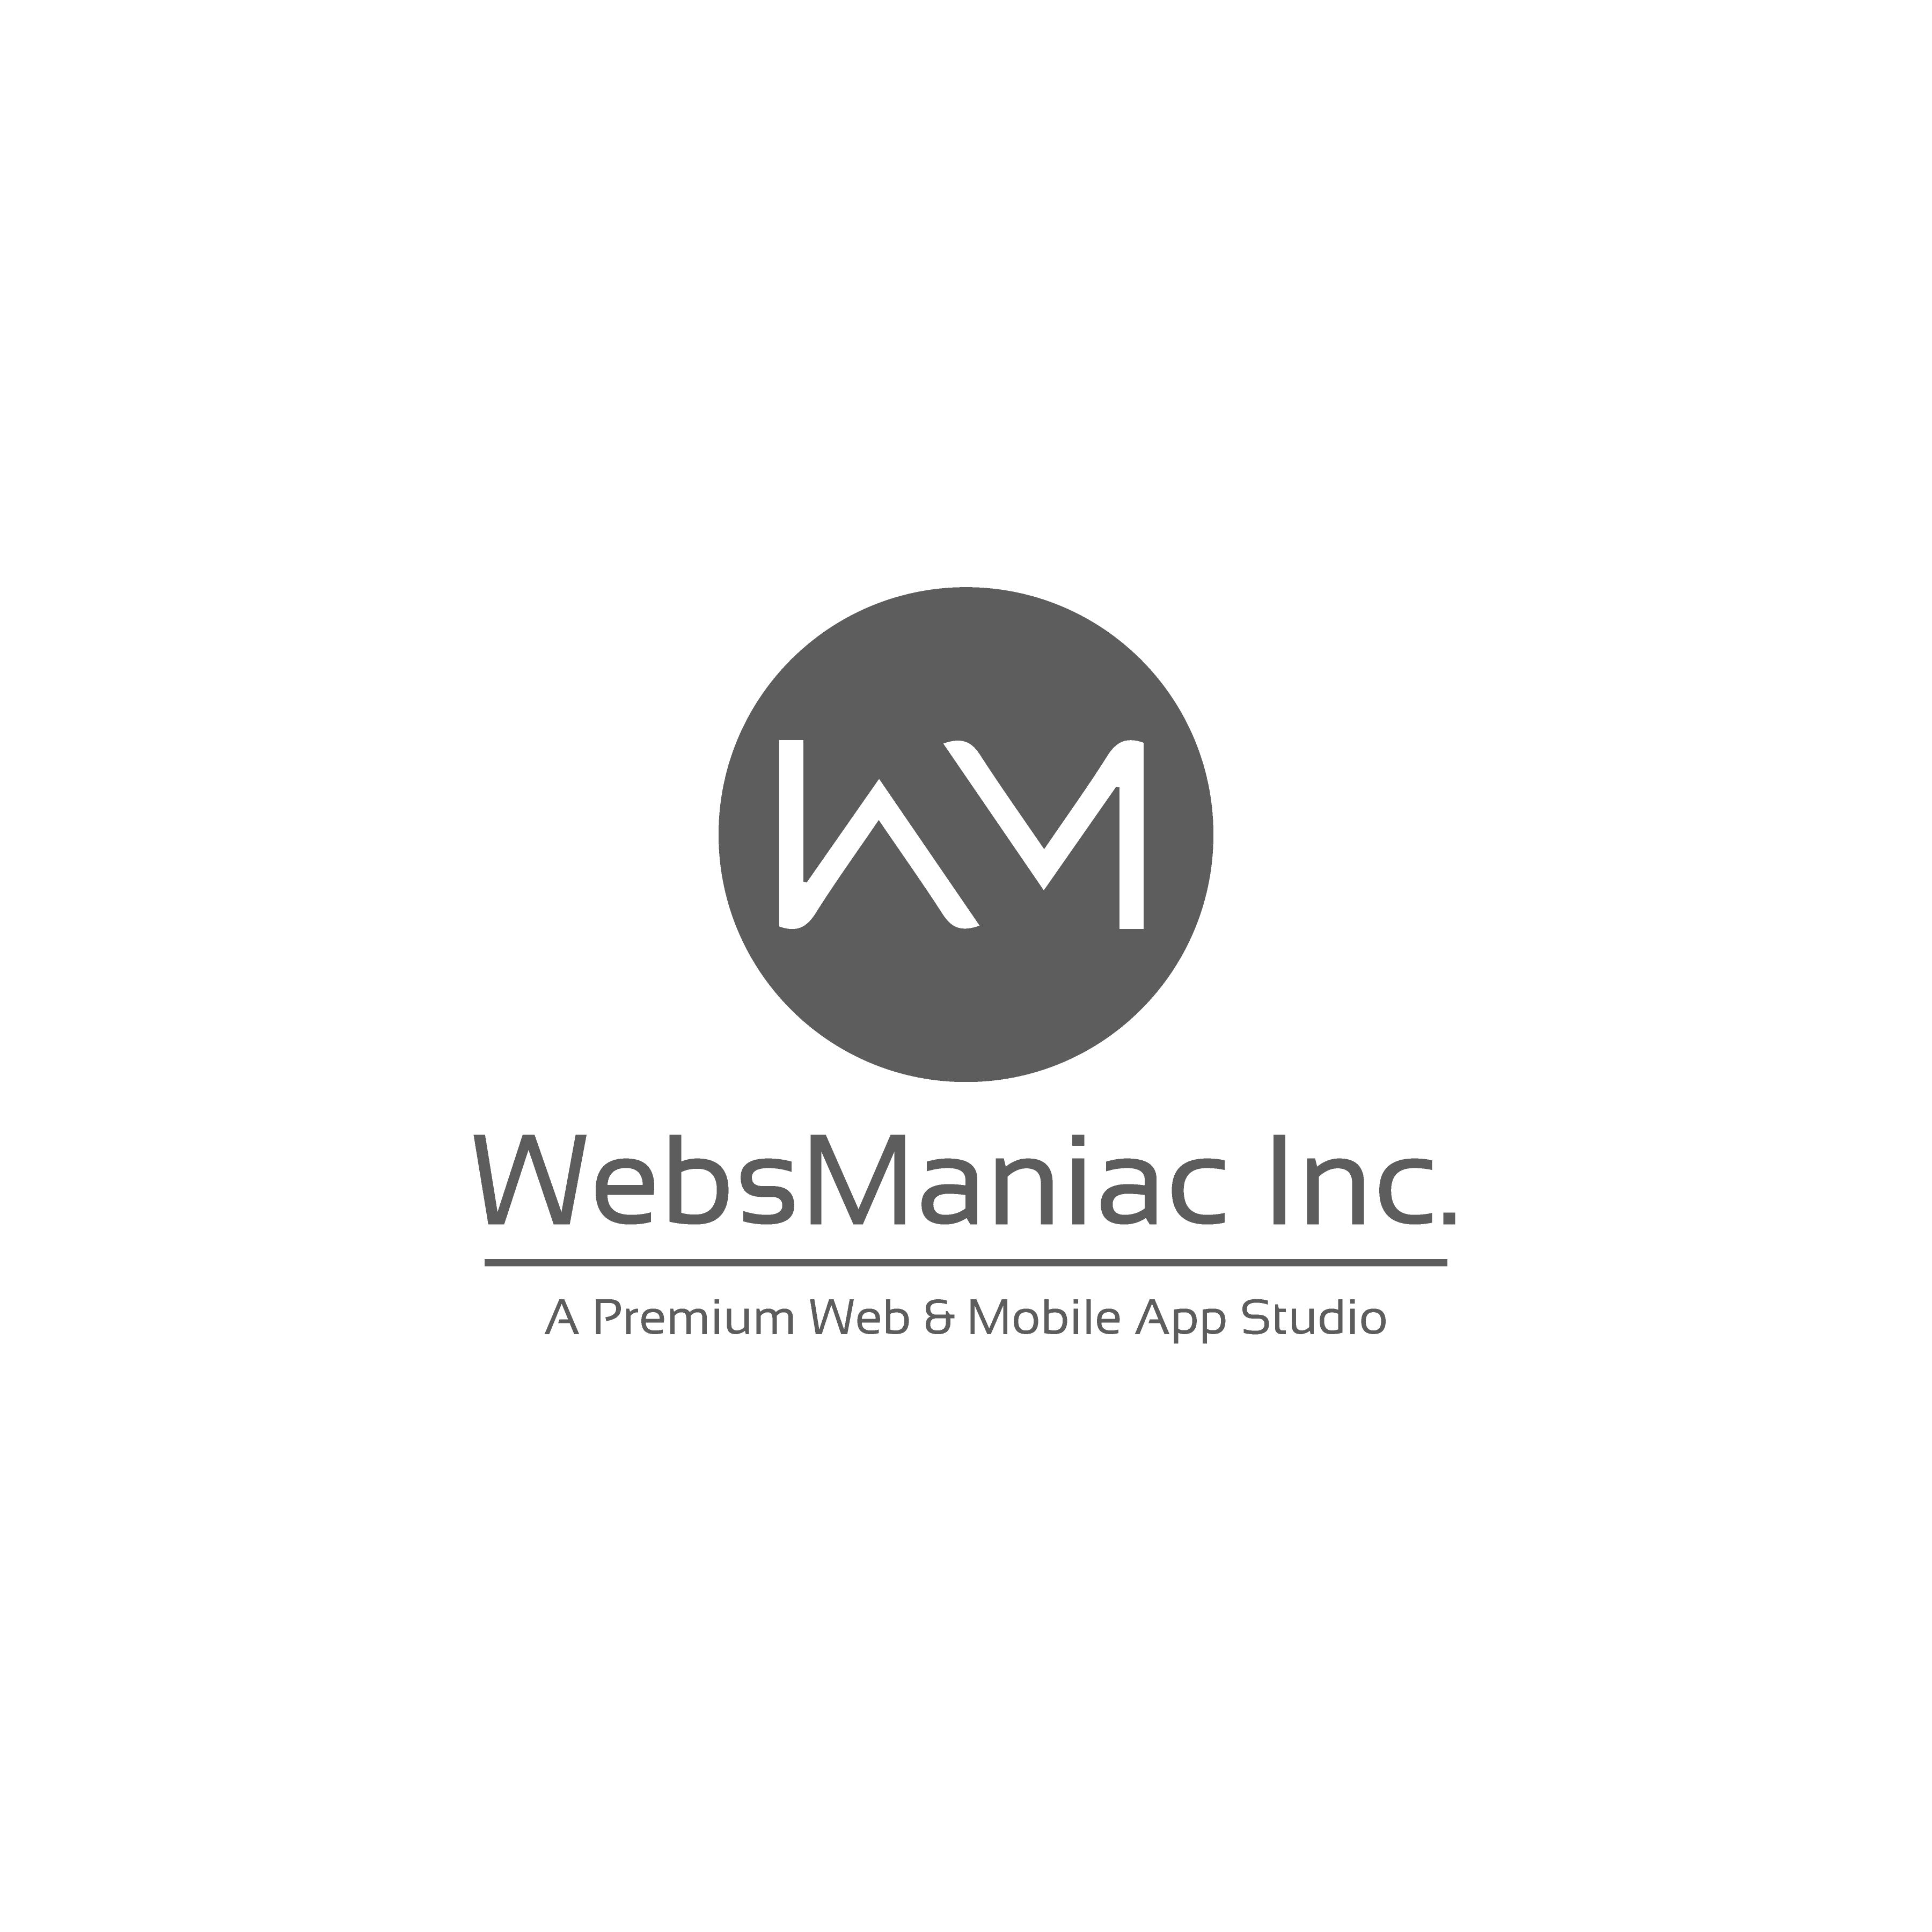 WebsManiac Inc. on 10Hostings